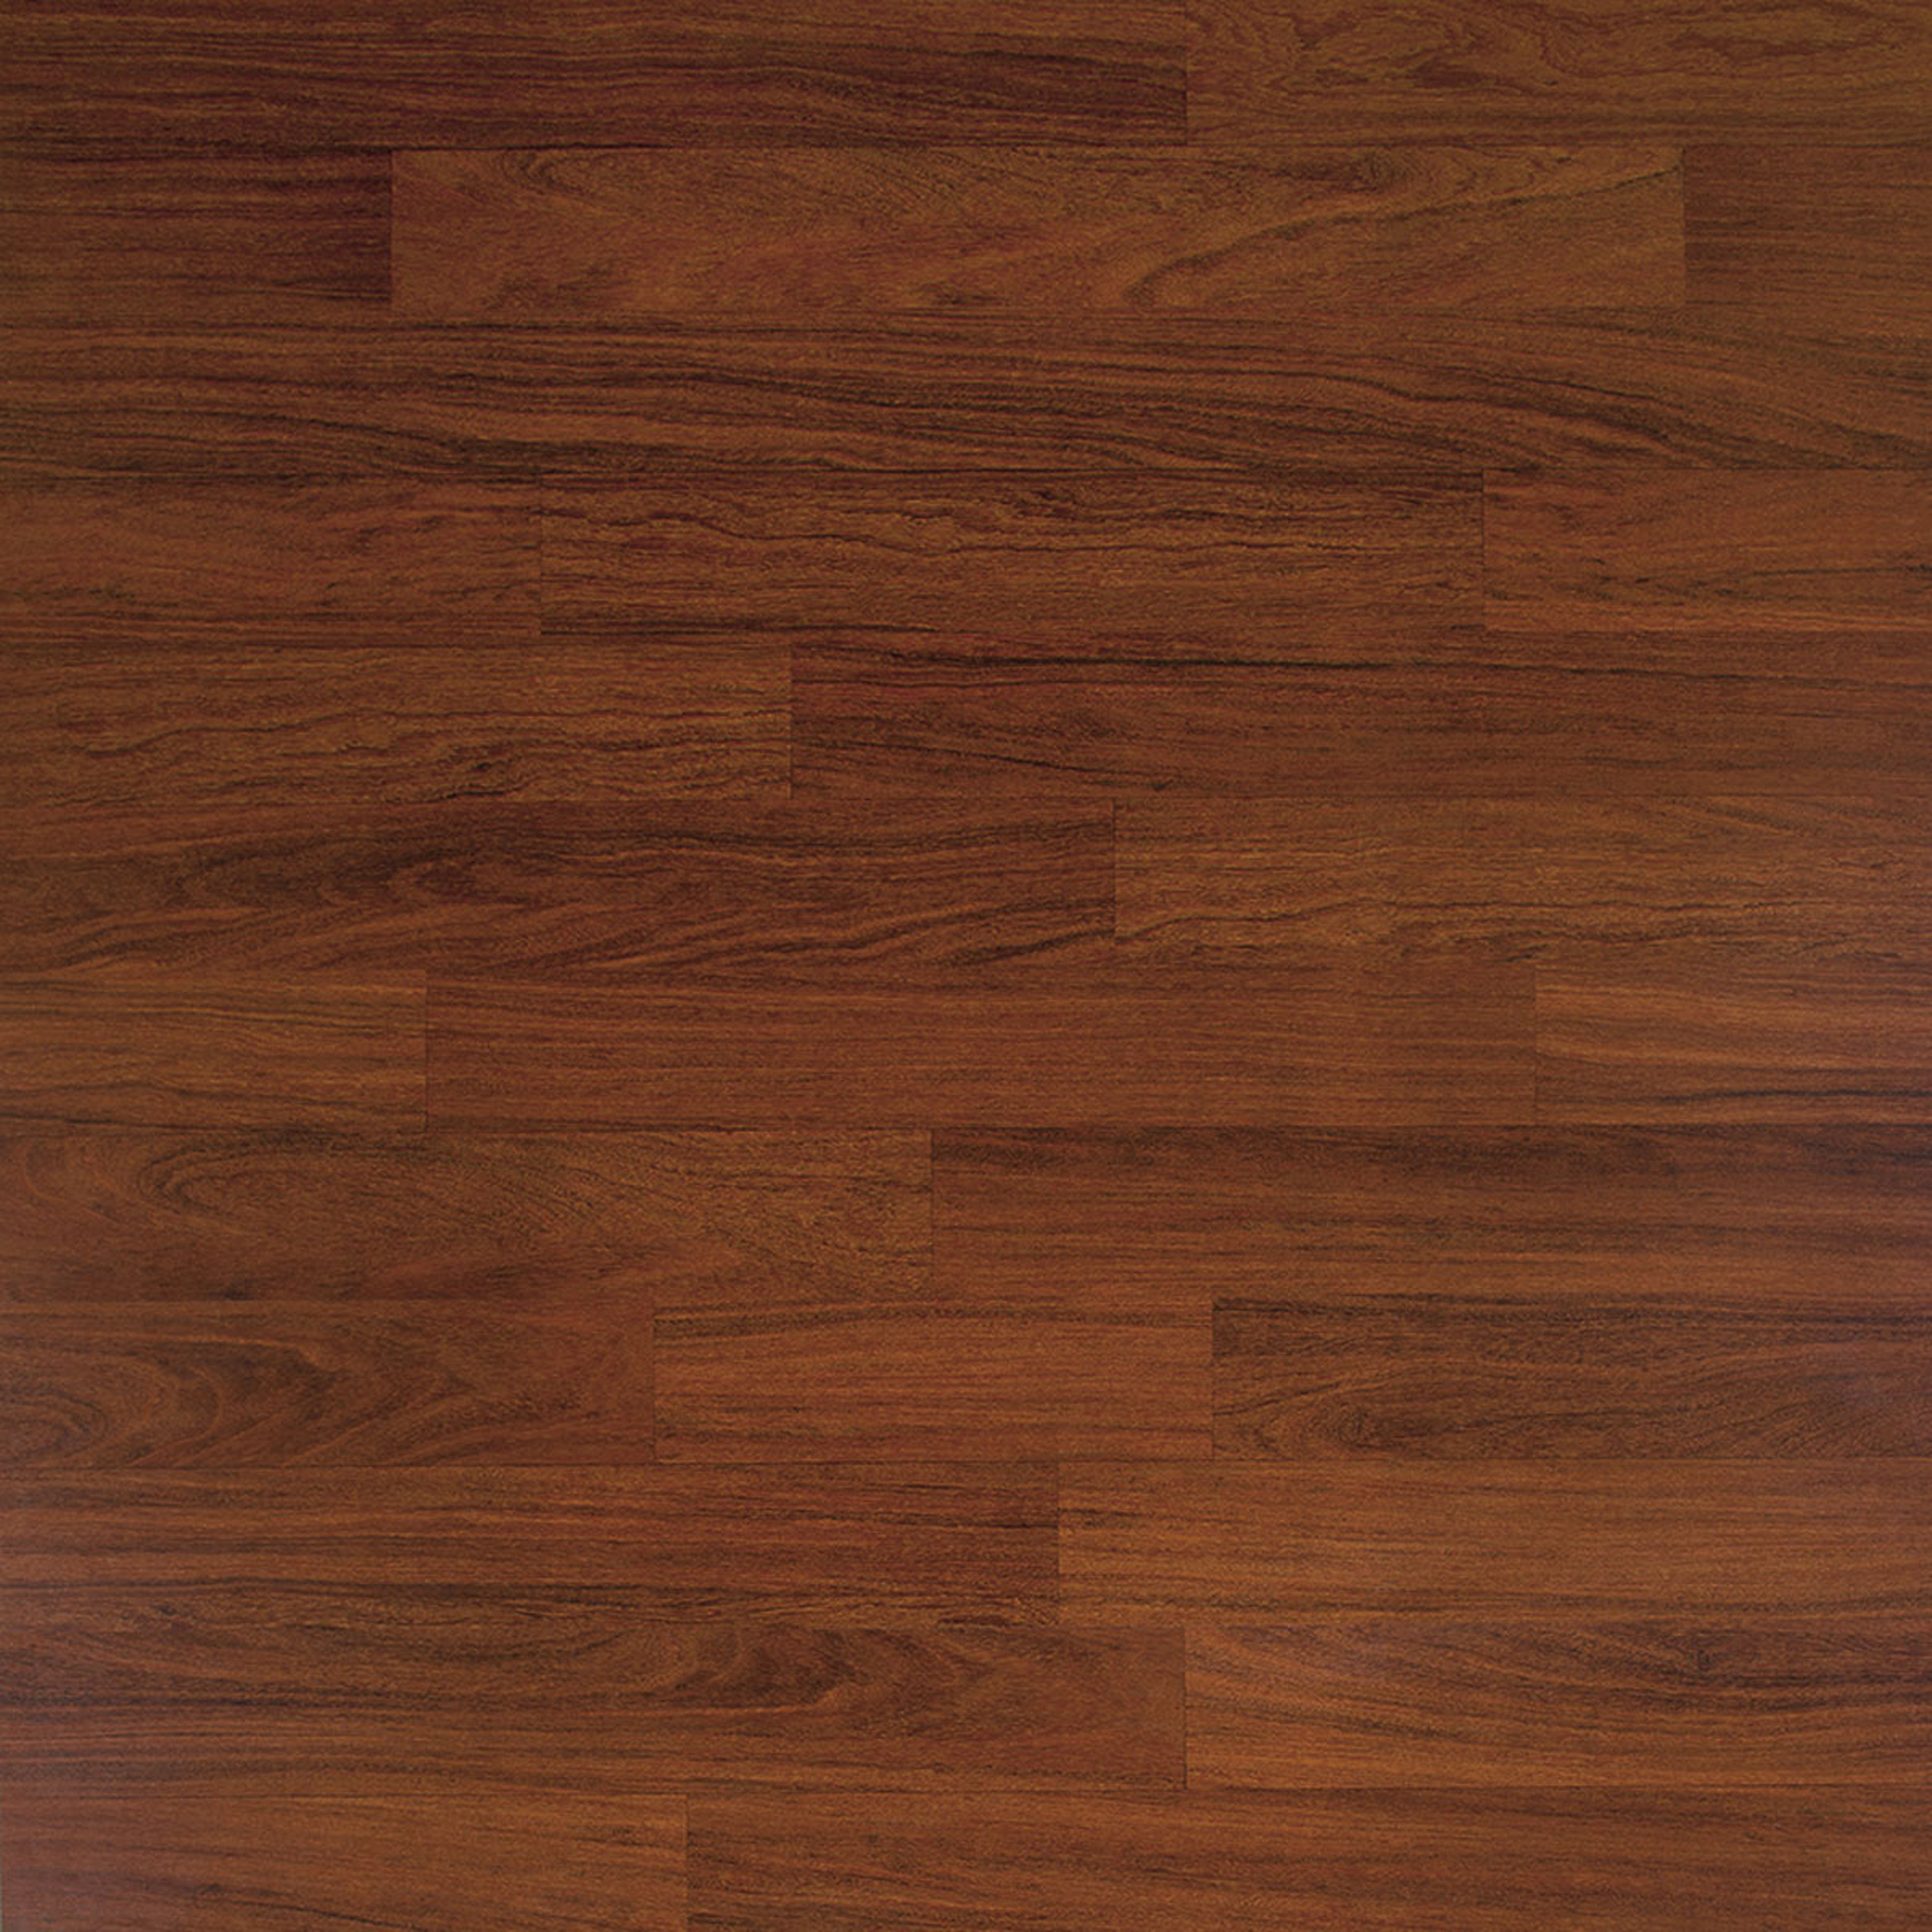 Luxury Laminate Wood Flooring Idea In Brown Gorgeous Laminate Wood Flooring Ideas (Image 88 of 123)